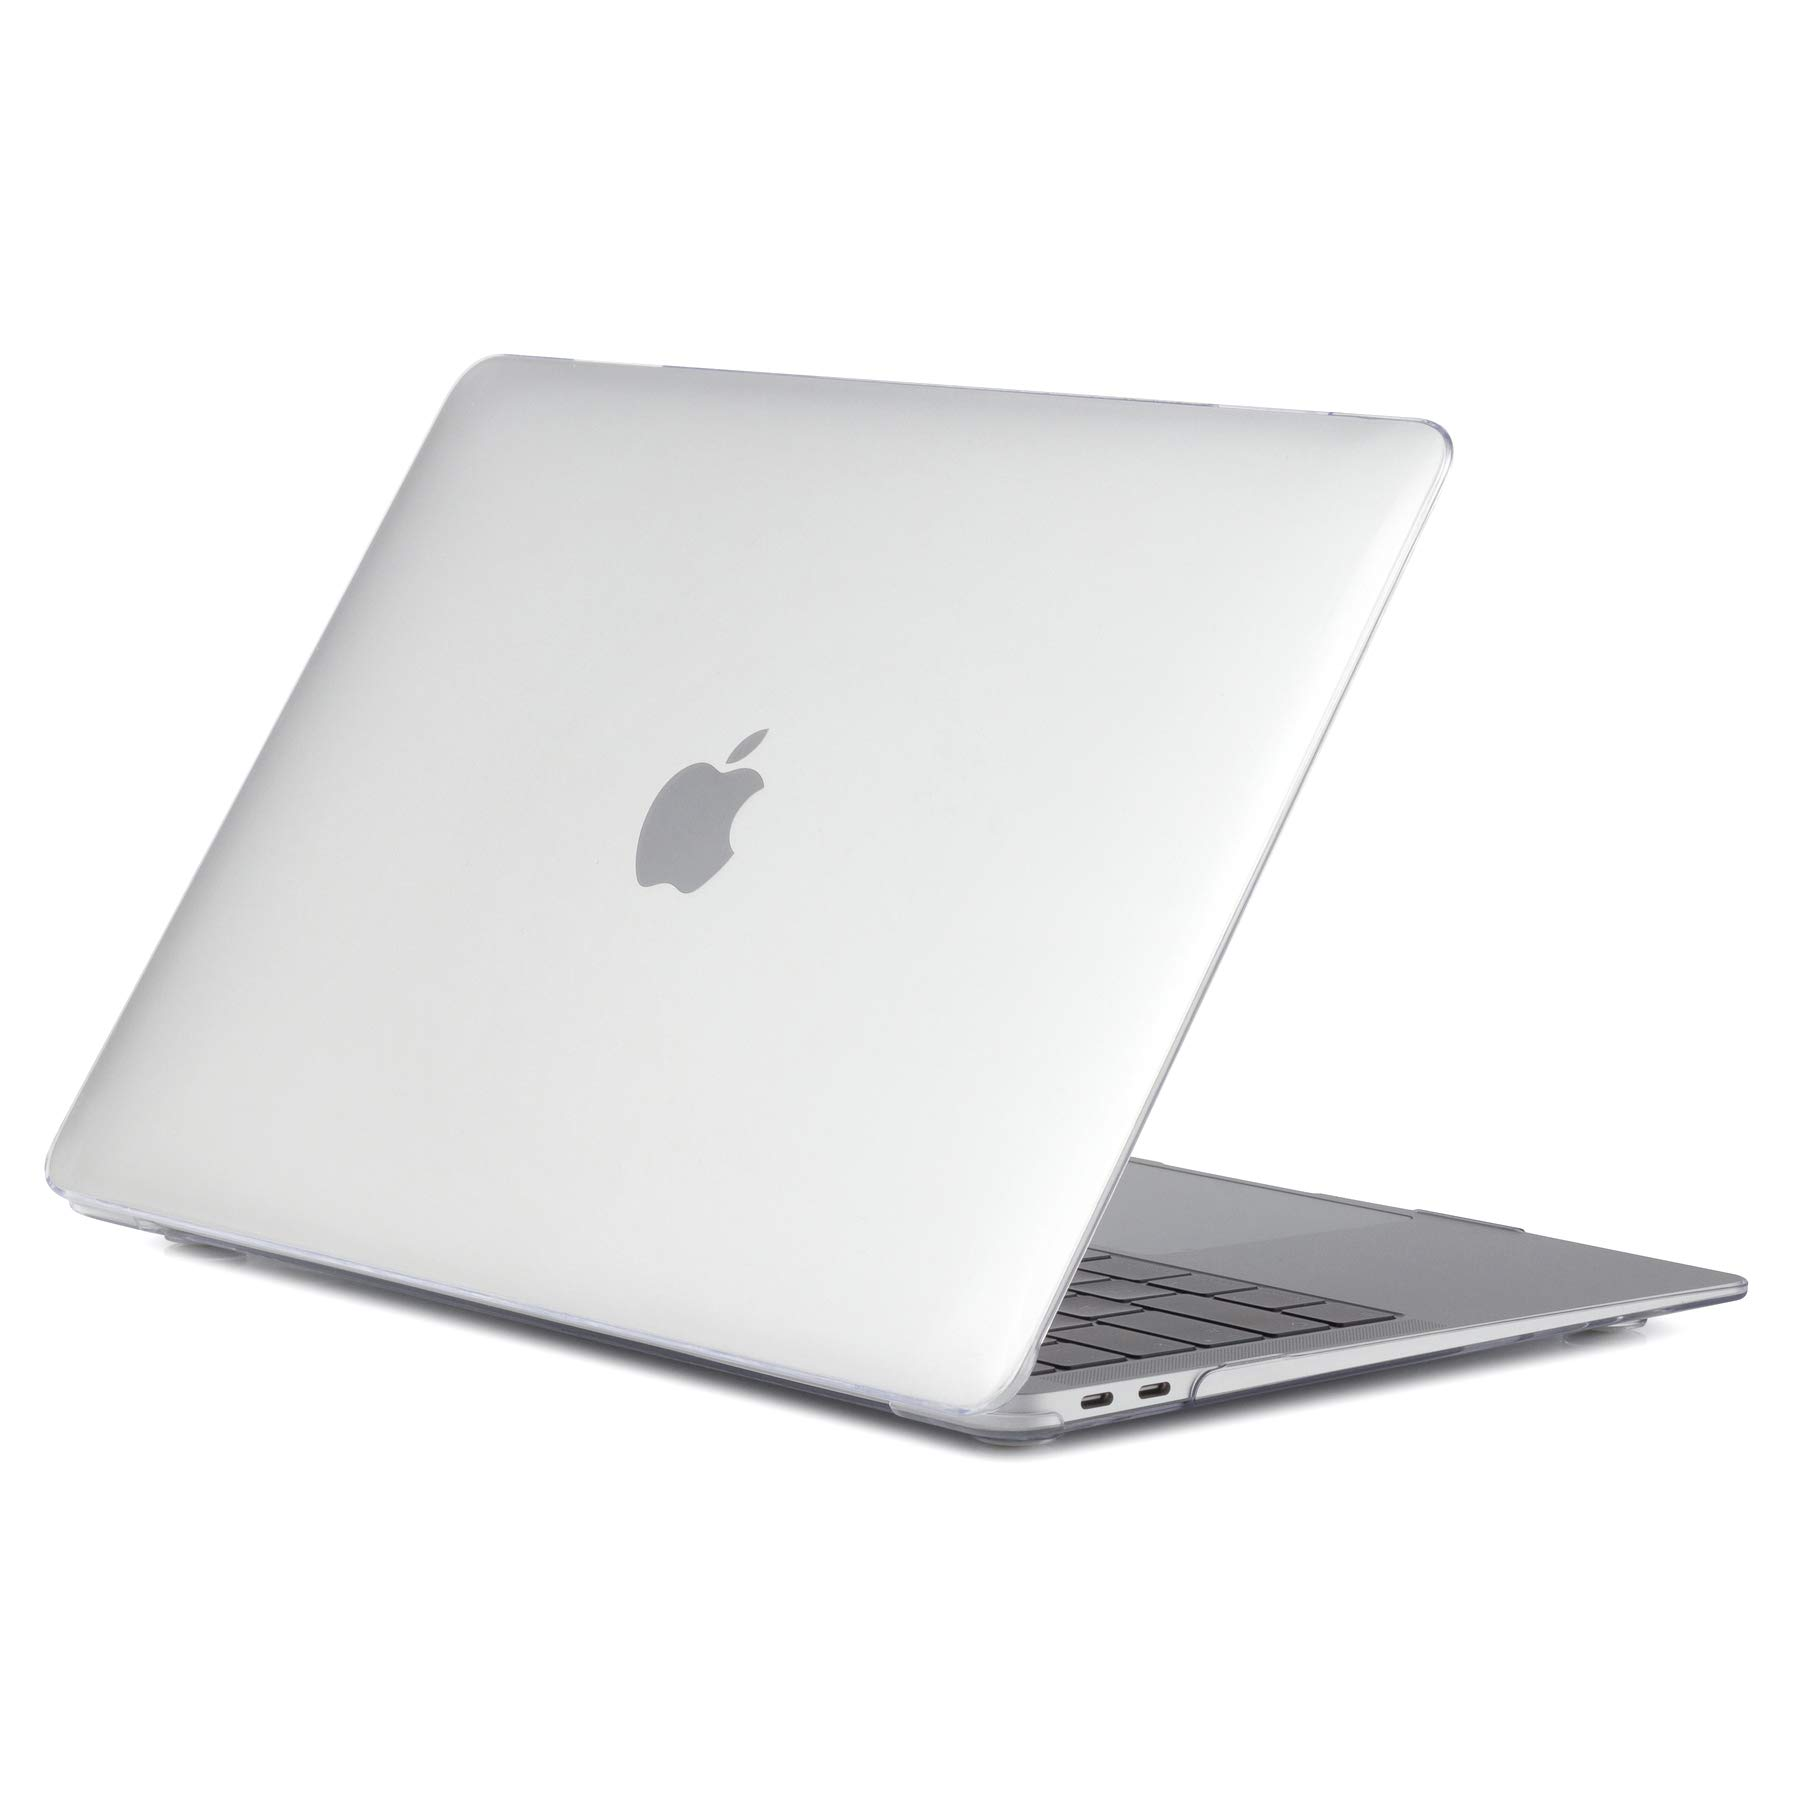 various colors be42c 1c3c5 Details about New Clear MacBook Air 13 inch Case 2018/2019 Crystal Plastic  Hard Shell Carrying